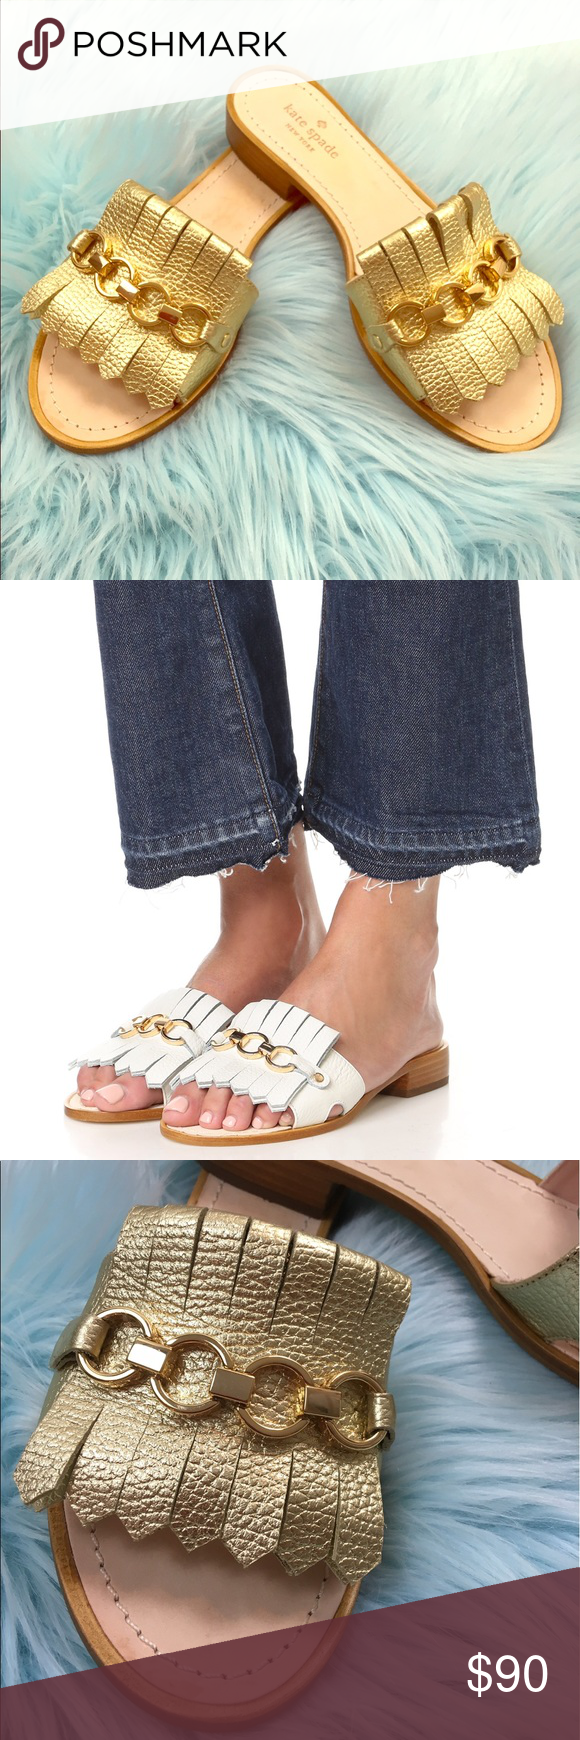 e1230ad98e96 Kate Spade Brie Metallic Gold Slip On Sandals This unique slide is  decorated with a layer of leather fringe and a chain